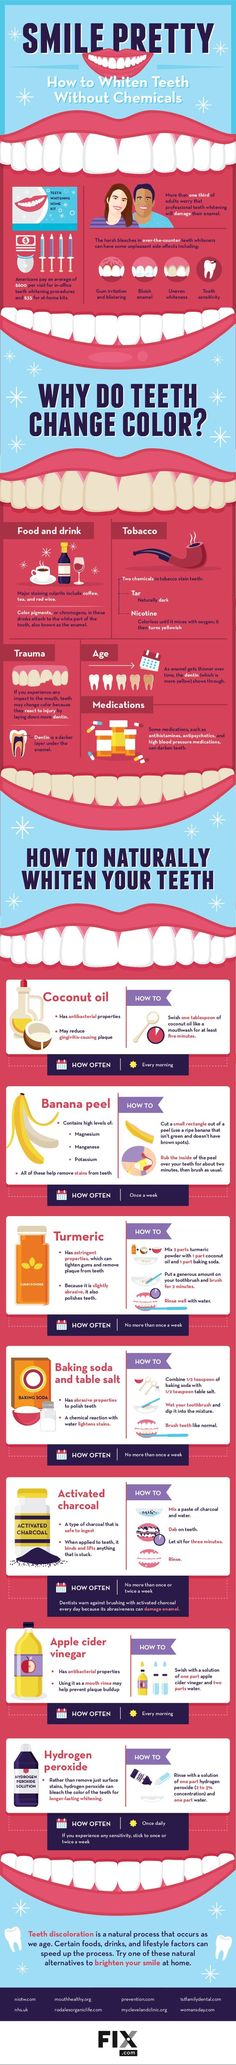 Avoid tooth sensitivity by using a chemical-free teeth whitener, that you may already have in your home!